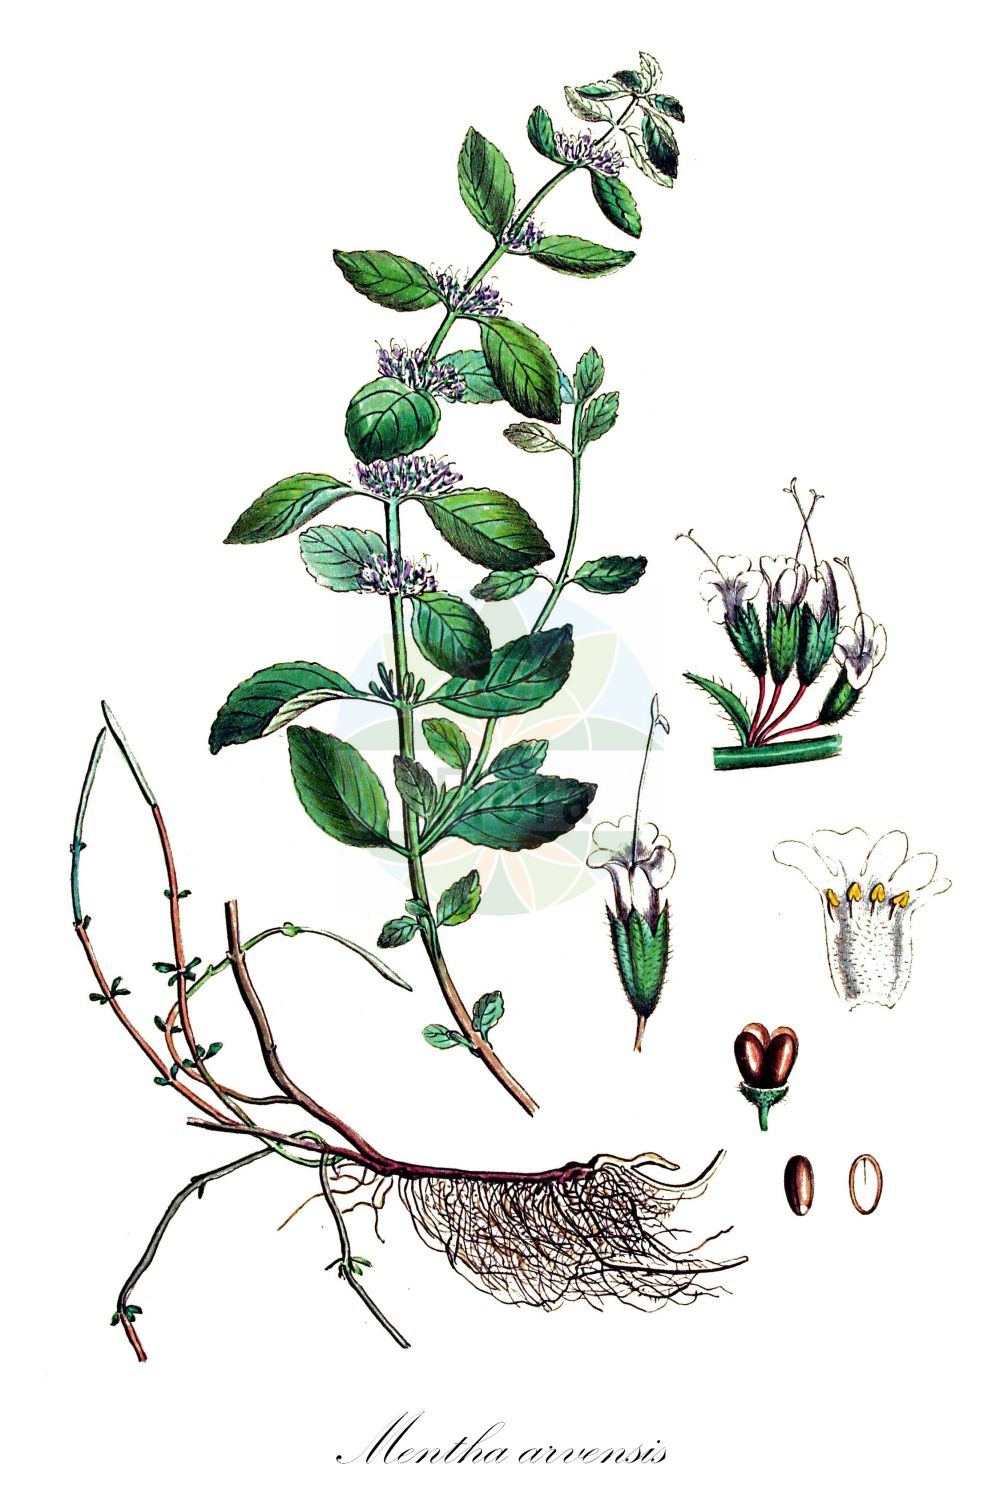 Historische Abbildung von Mentha arvensis (Acker-Minze - Corn Mint). Das Bild zeigt Blatt, Bluete, Frucht und Same. ---- Historical Drawing of Mentha arvensis (Acker-Minze - Corn Mint).The image is showing leaf, flower, fruit and seed.(Mentha arvensis,Acker-Minze,Corn Mint,Calamintha arvensis,,Quirl-Minze,Wild Mint,Field Mint,Mentha,Minze,Mint,Lamiaceae,Lippenbluetengewaechse;Lippenbluetler,Nettle family,Blatt,Bluete,Frucht,Same,leaf,flower,fruit,seed,Kops (1800-1934))